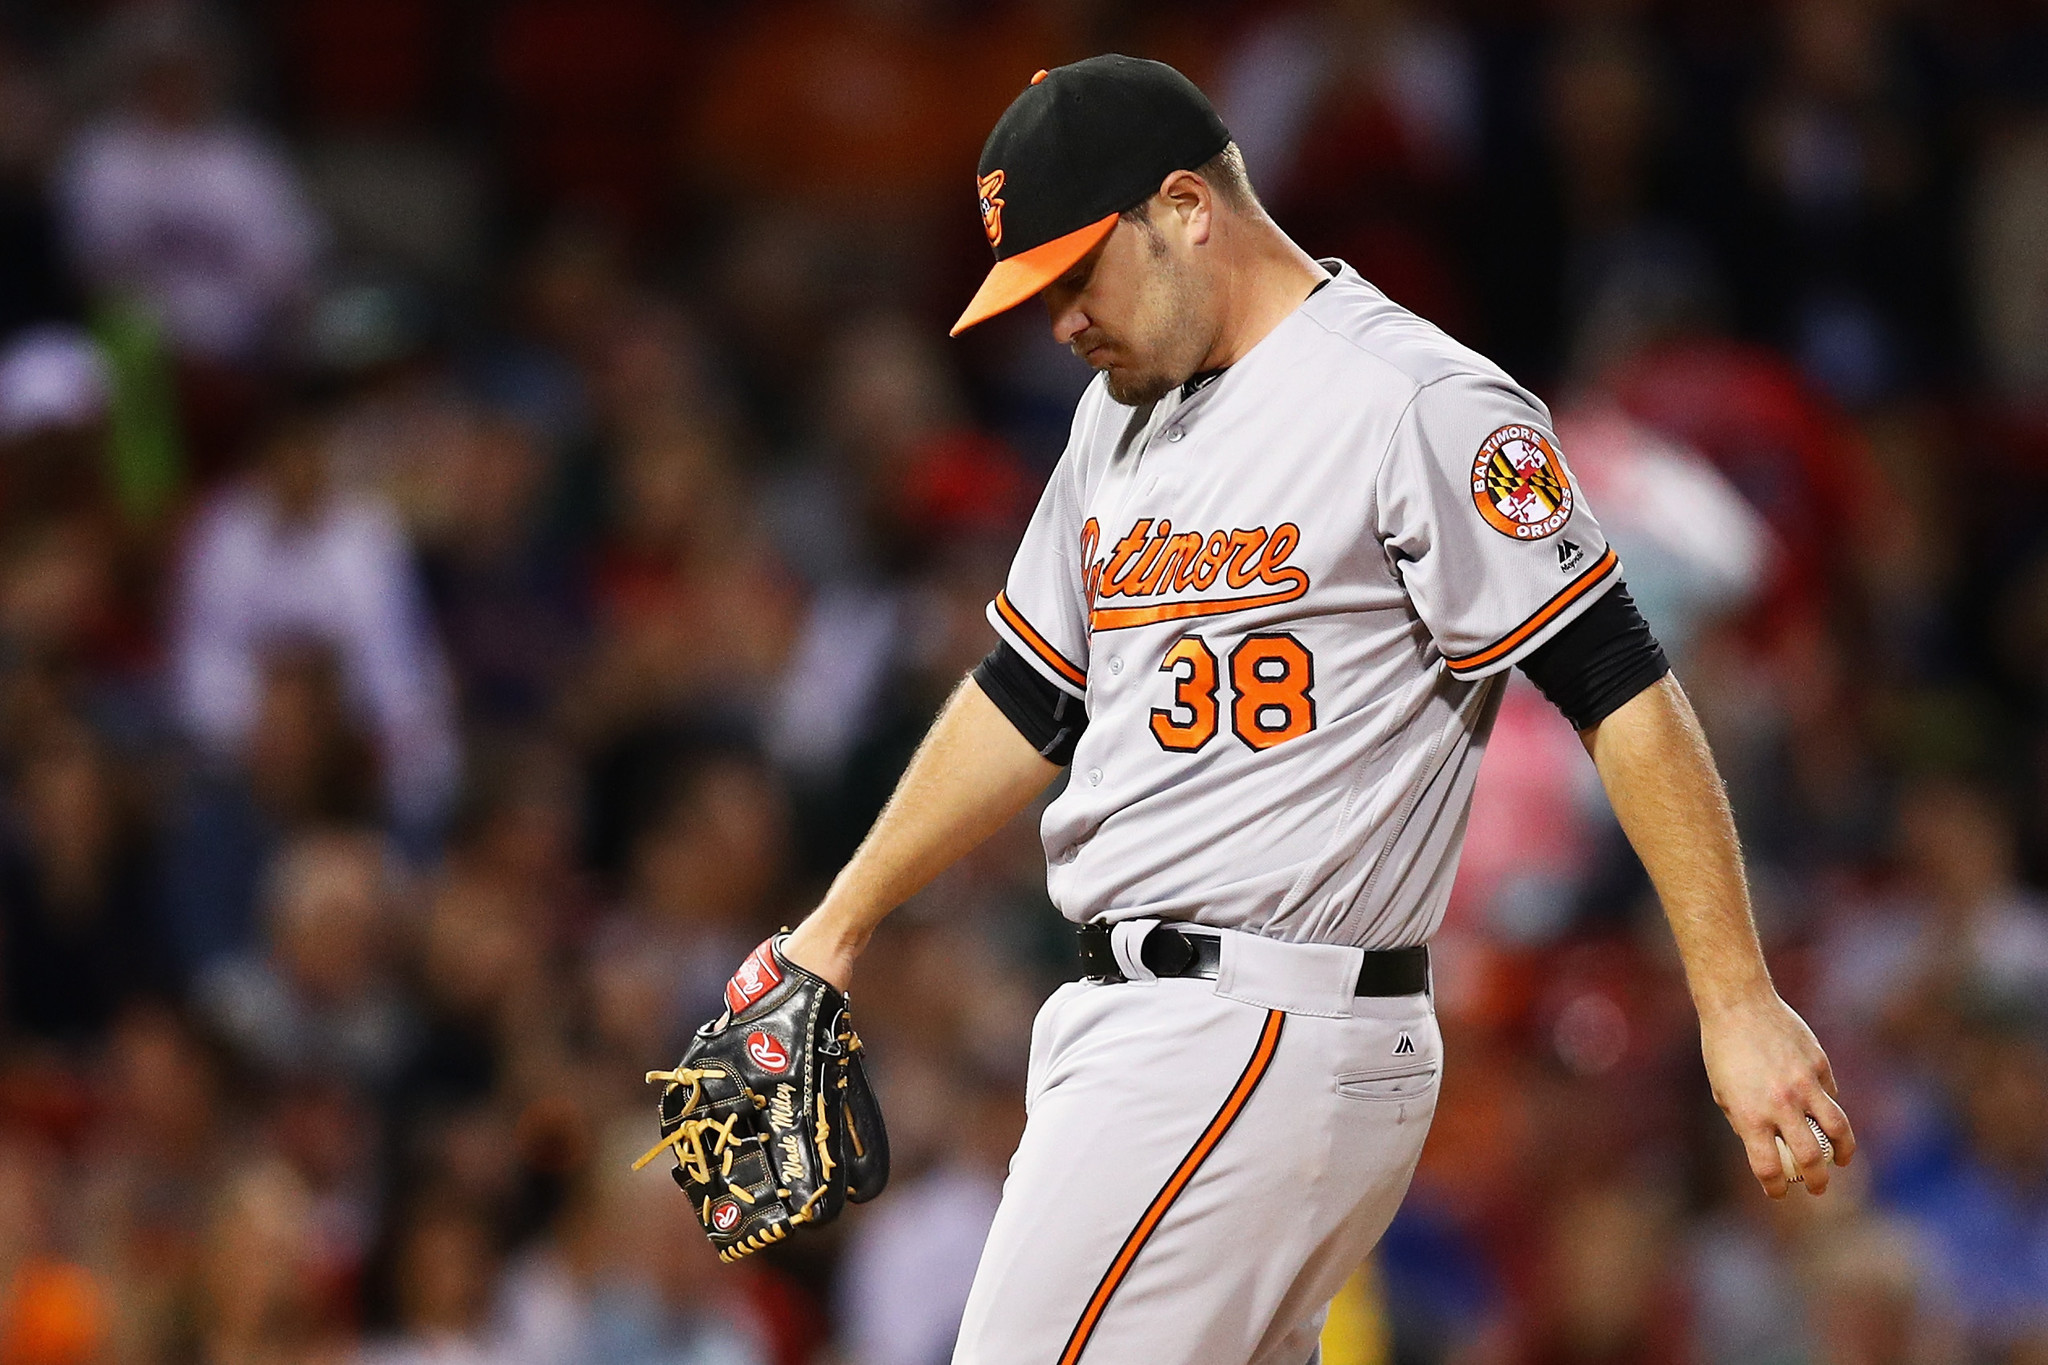 Bal-orioles-notes-wade-miley-in-line-for-sunday-start-mike-wright-paul-janish-added-for-stretch-run-20160915